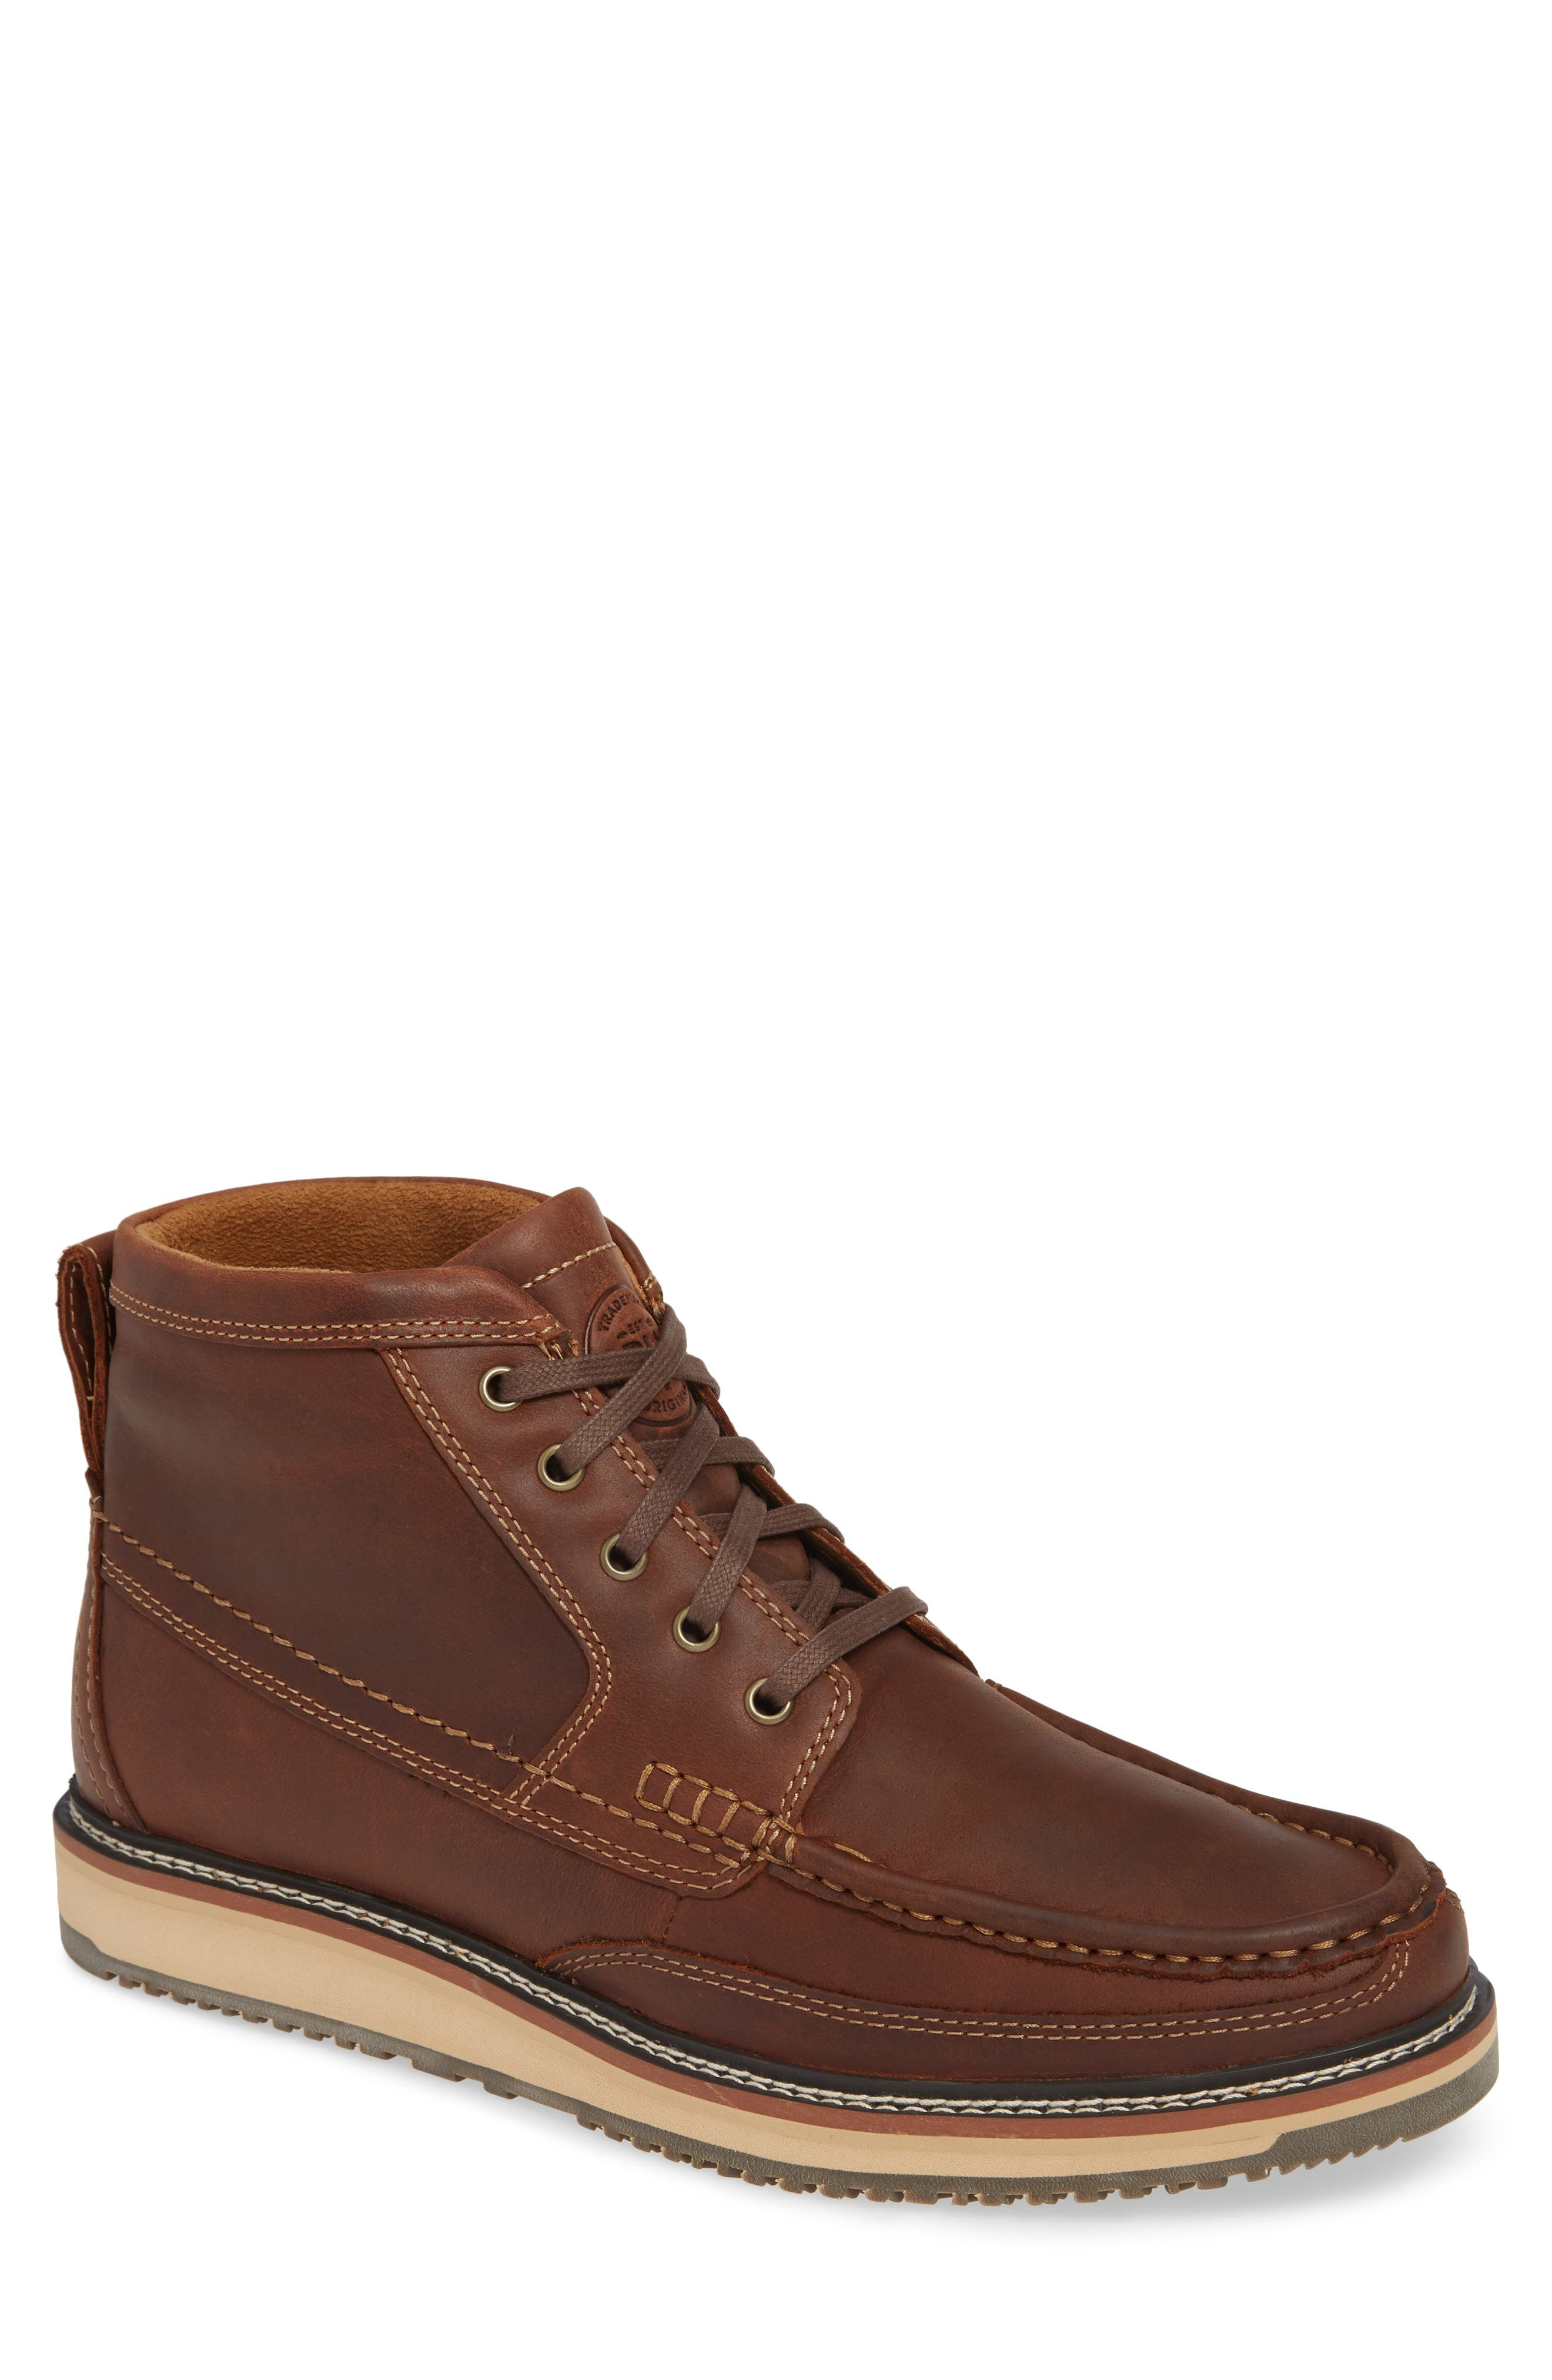 'Lookout' Moc Toe Boot,                         Main,                         color, FOOTHILL BROWN LEATHER